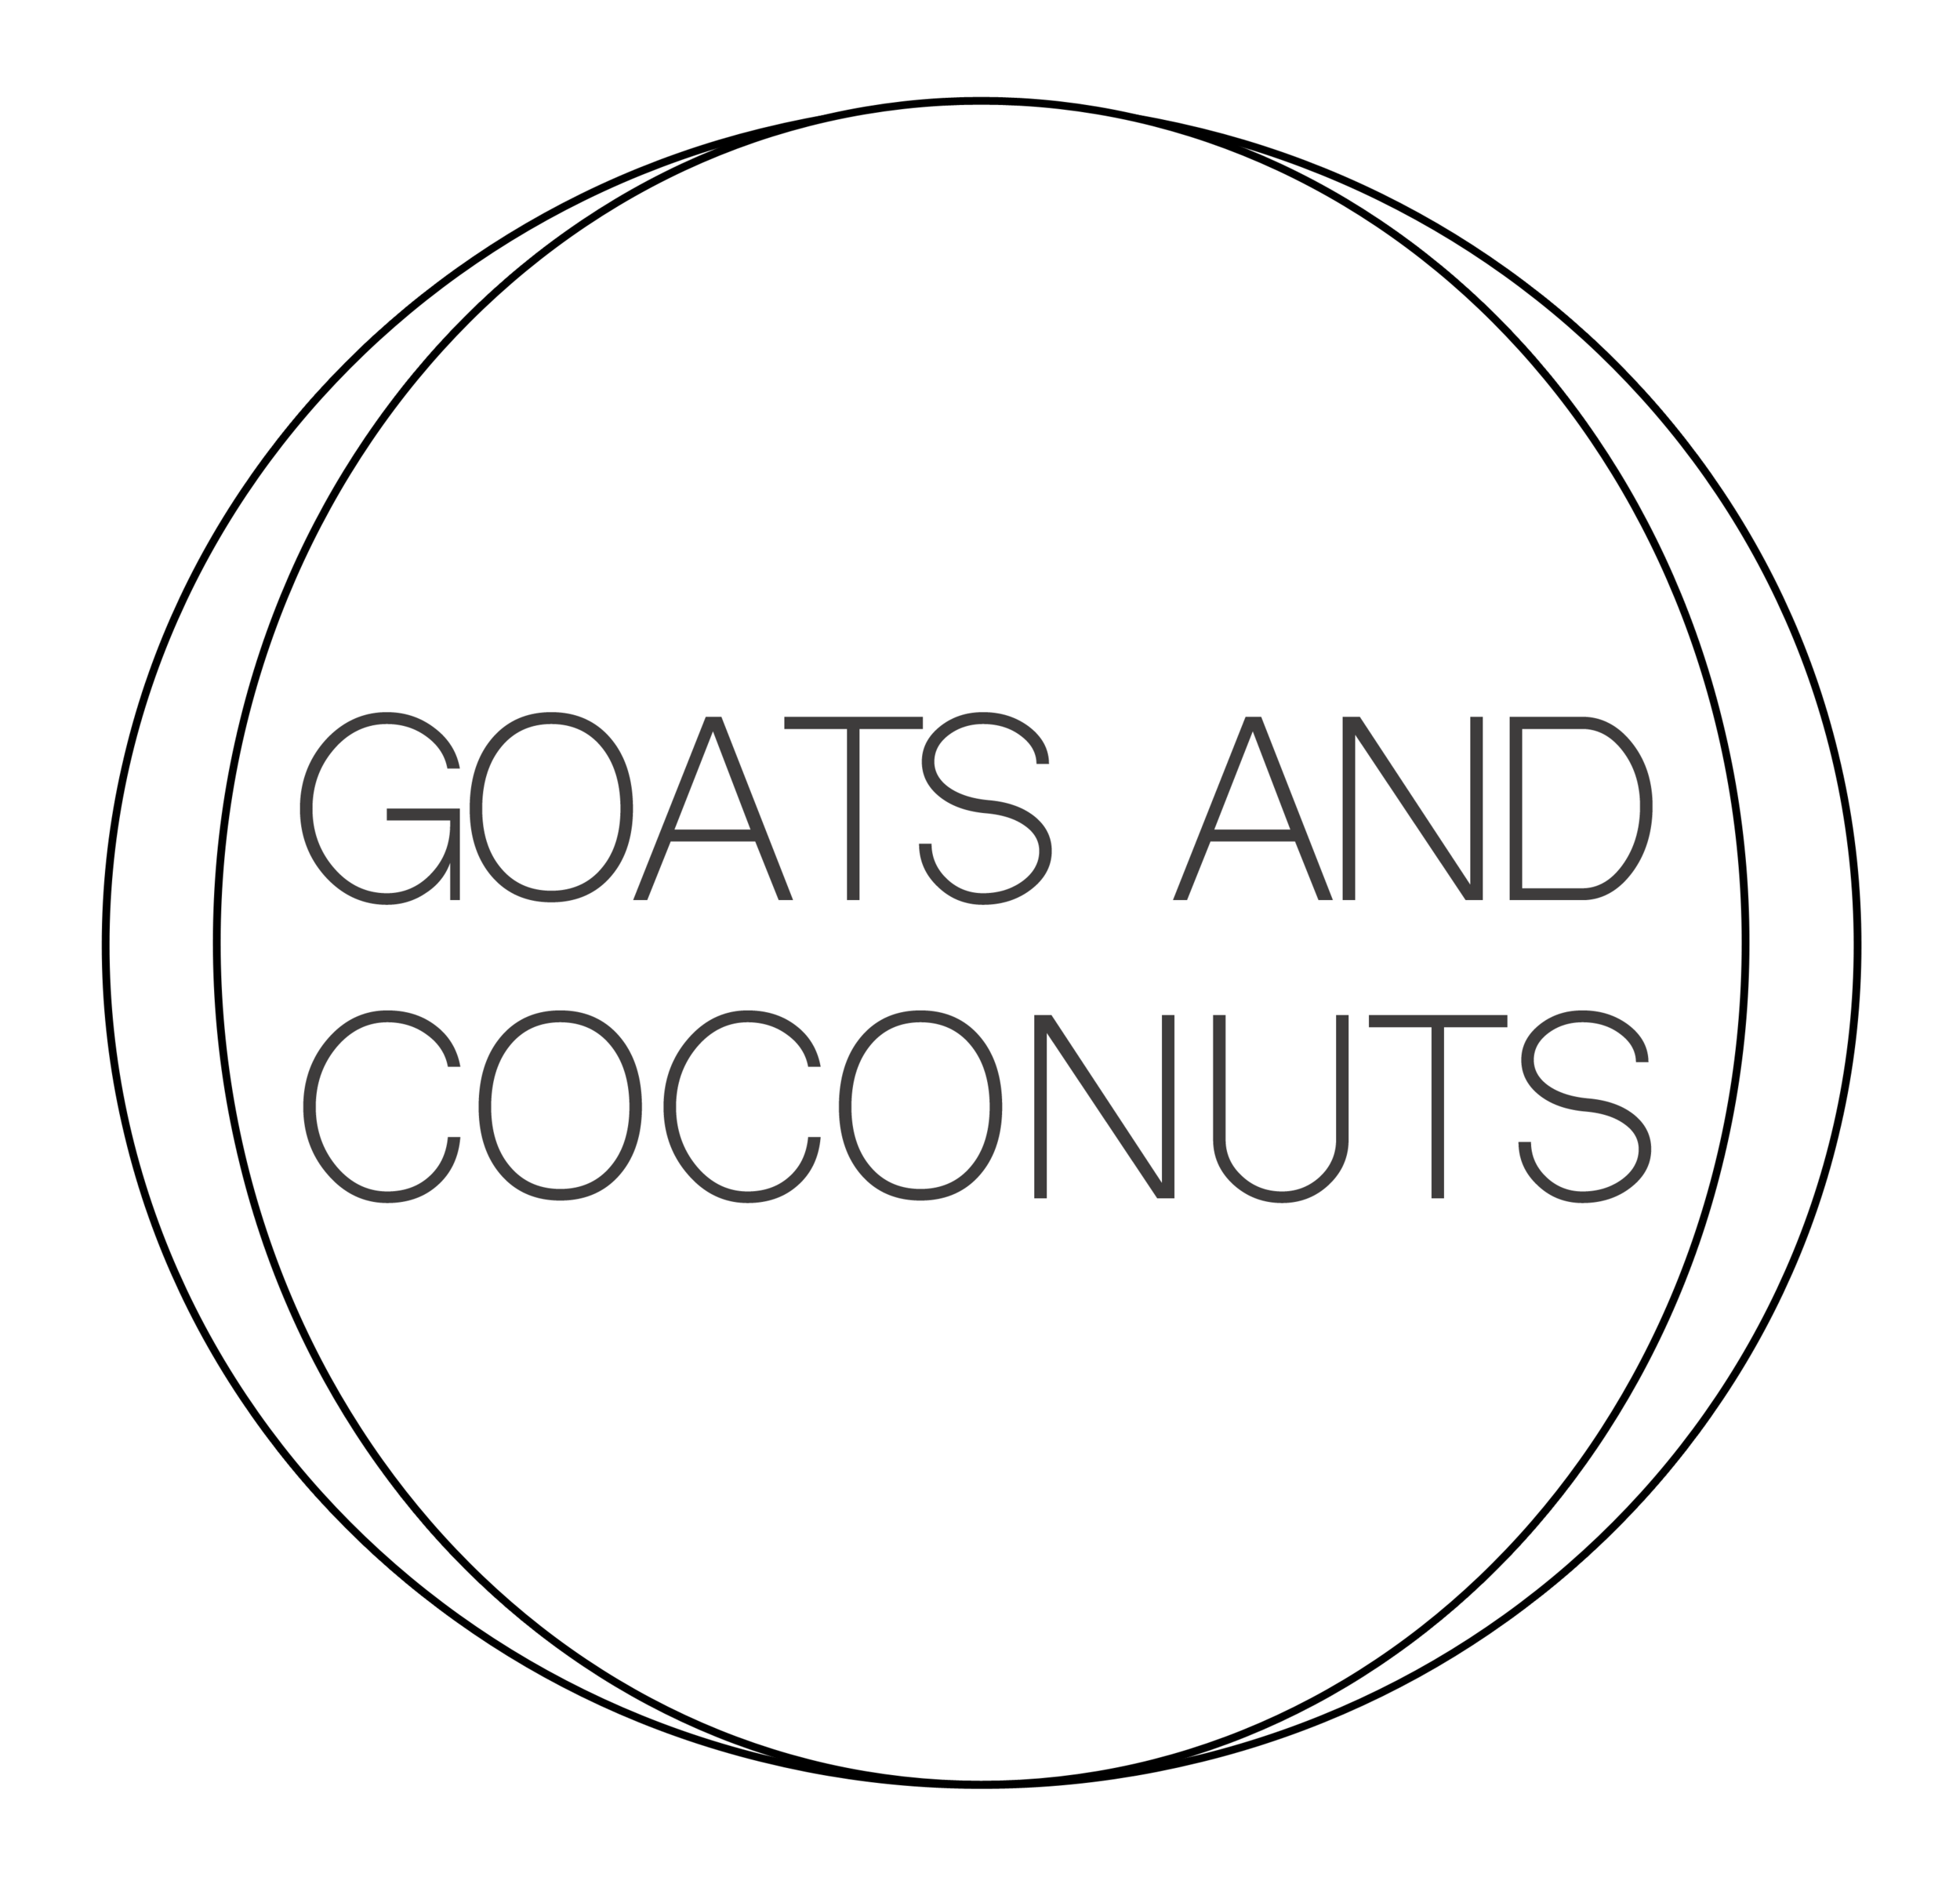 Goats and Coconuts